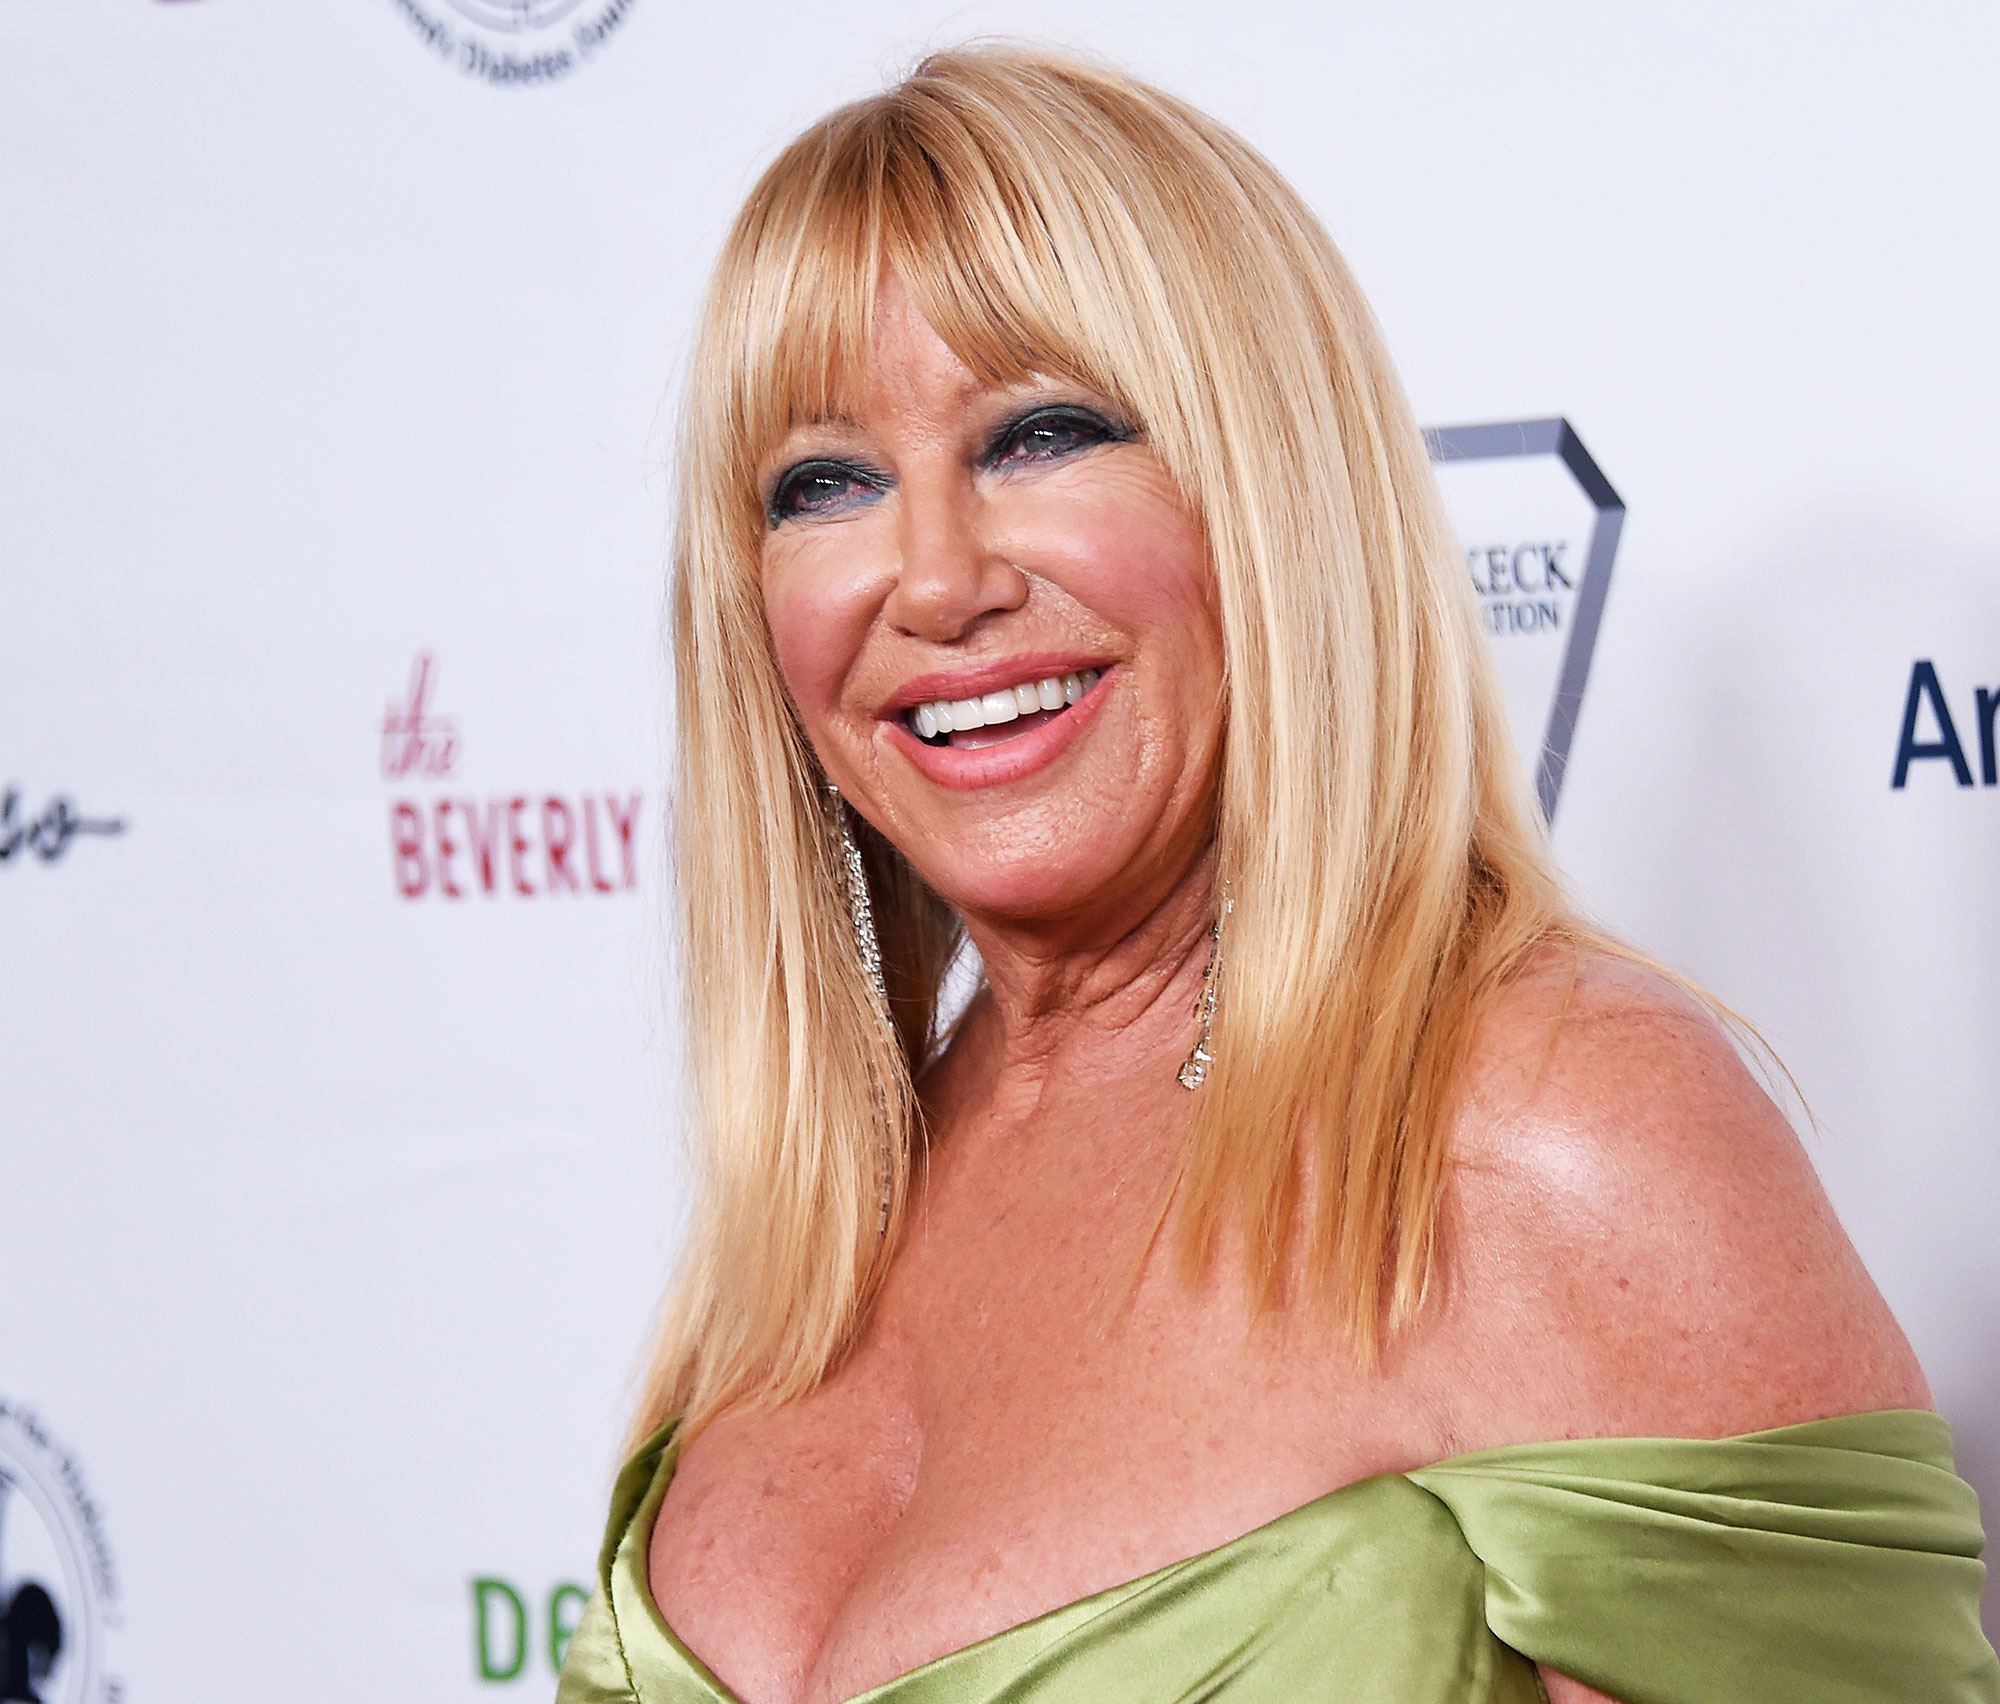 ICloud Suzanne Somers nude photos 2019